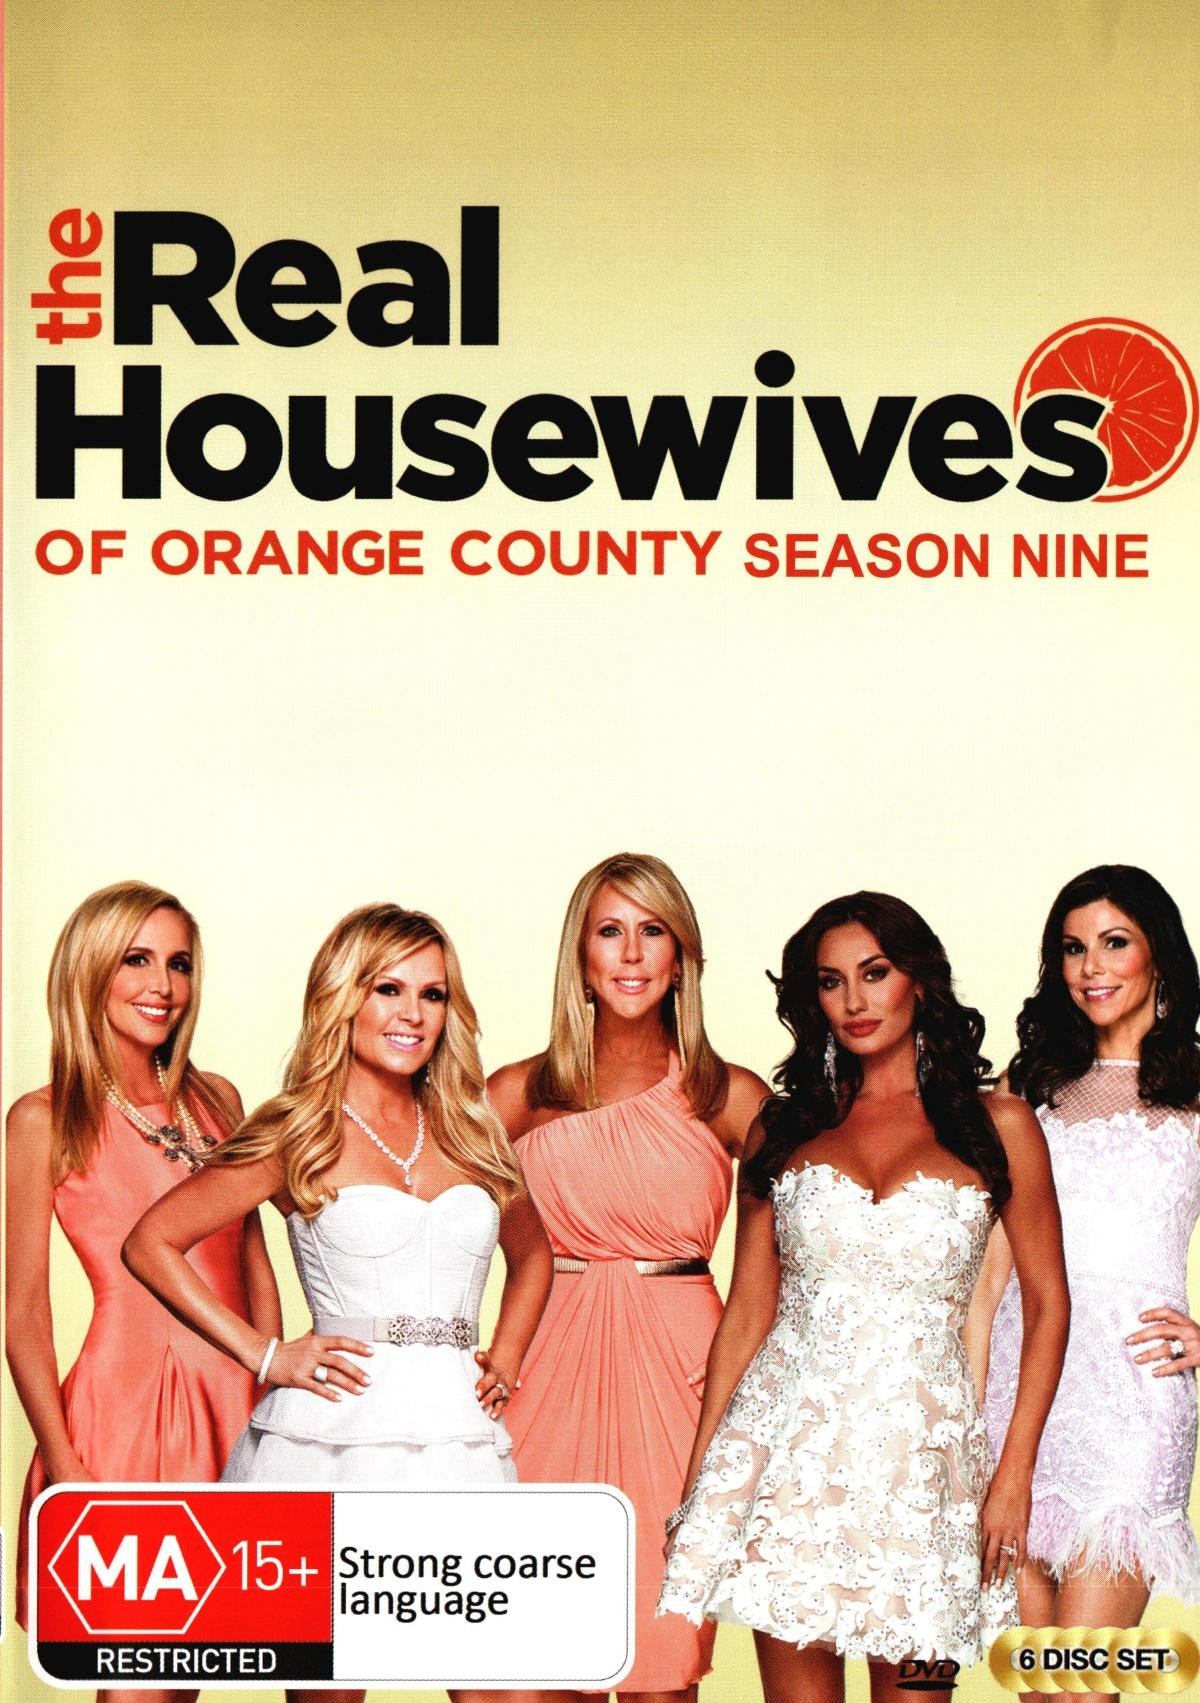 The Real Housewives of Orange County - Season 9